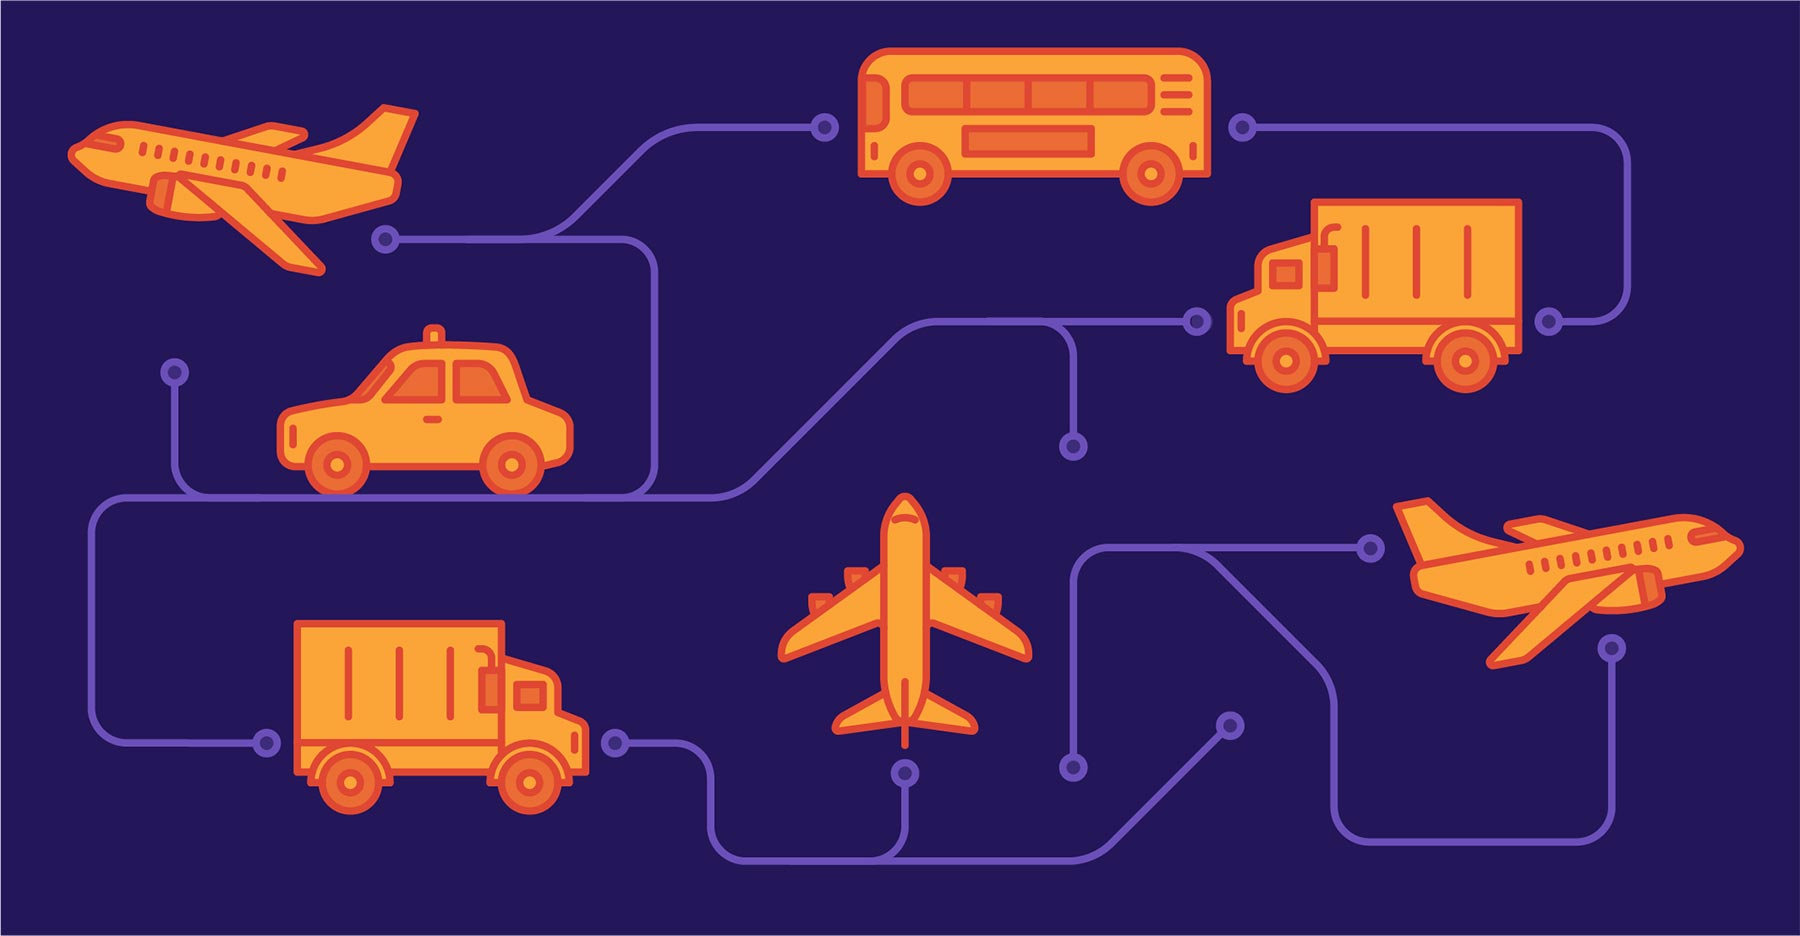 GitLab transport illustration